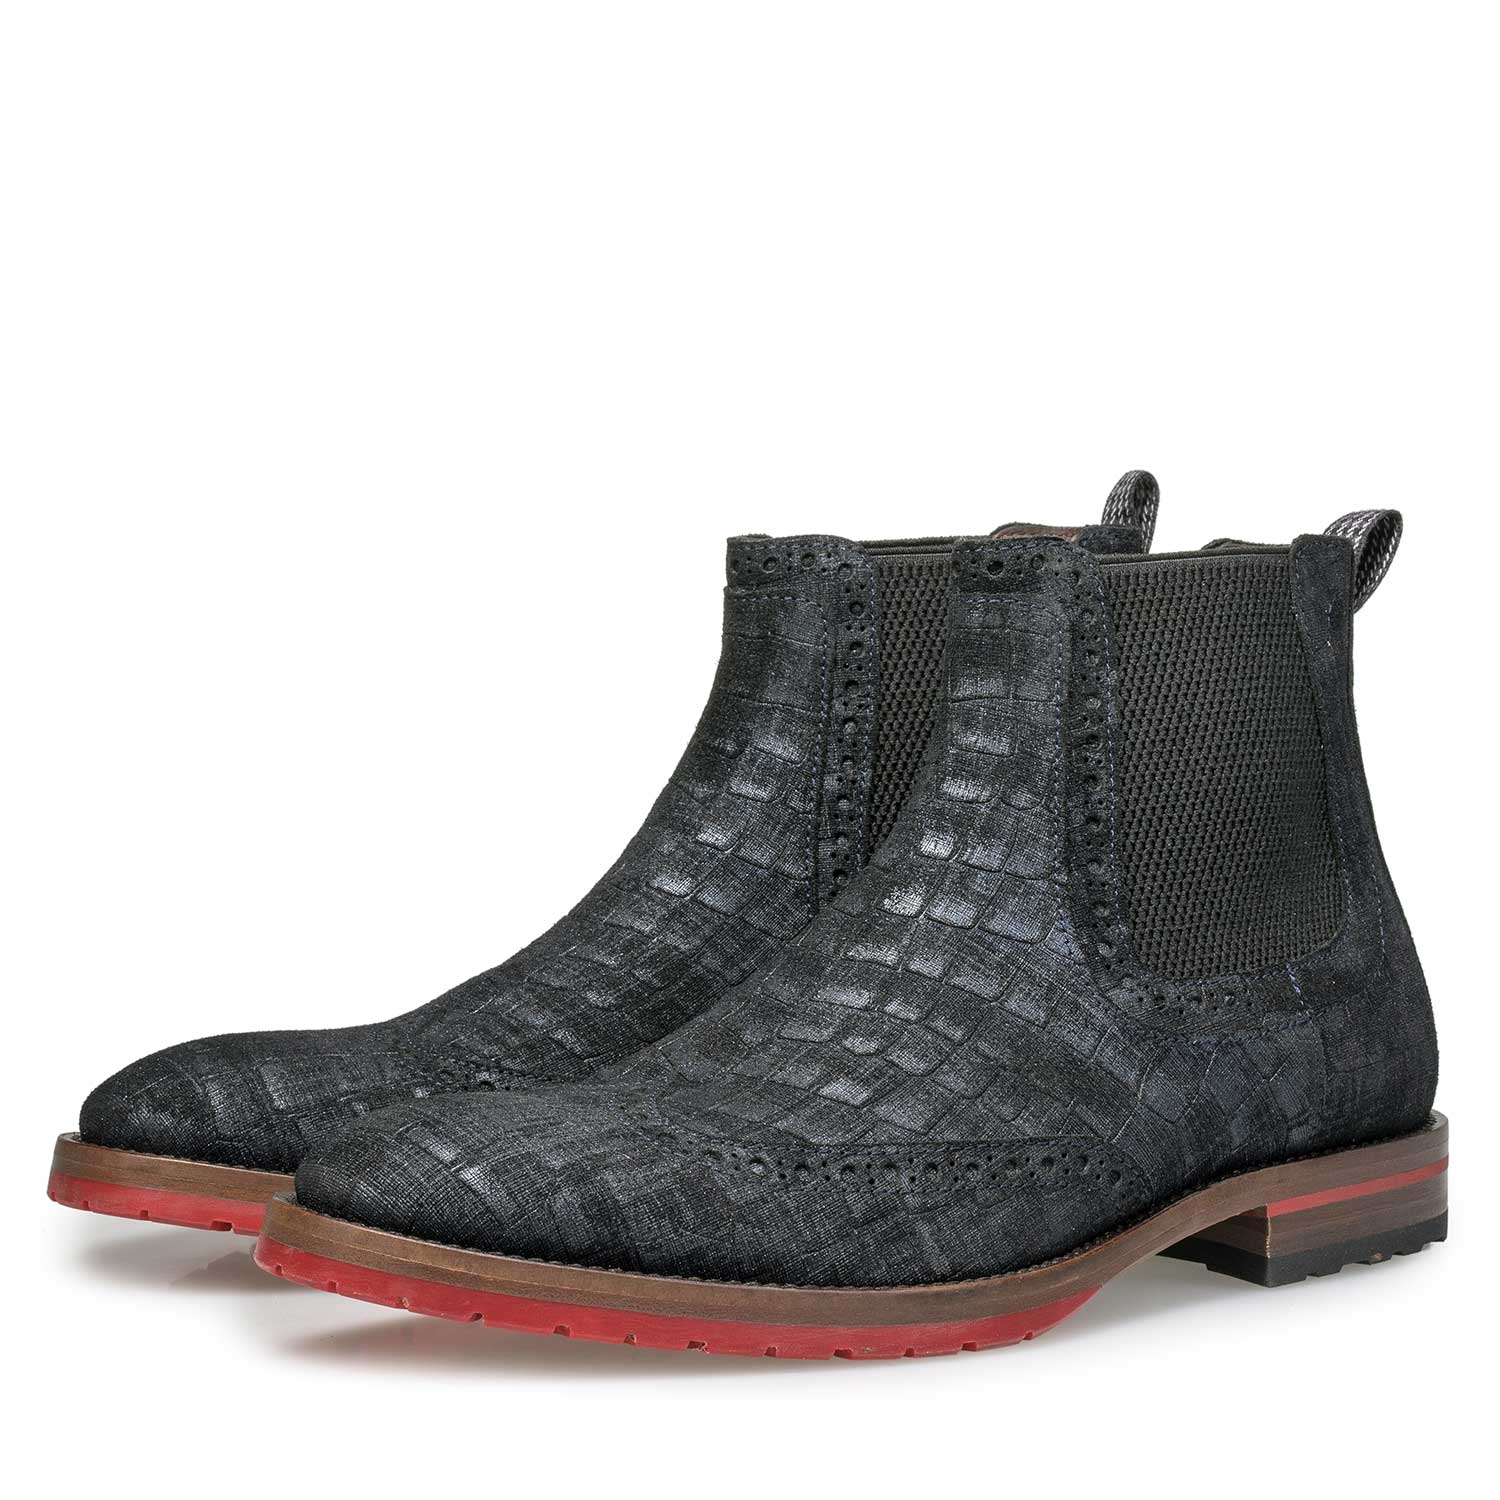 10329/08 - Blue suede Chelsea boot with check pattern